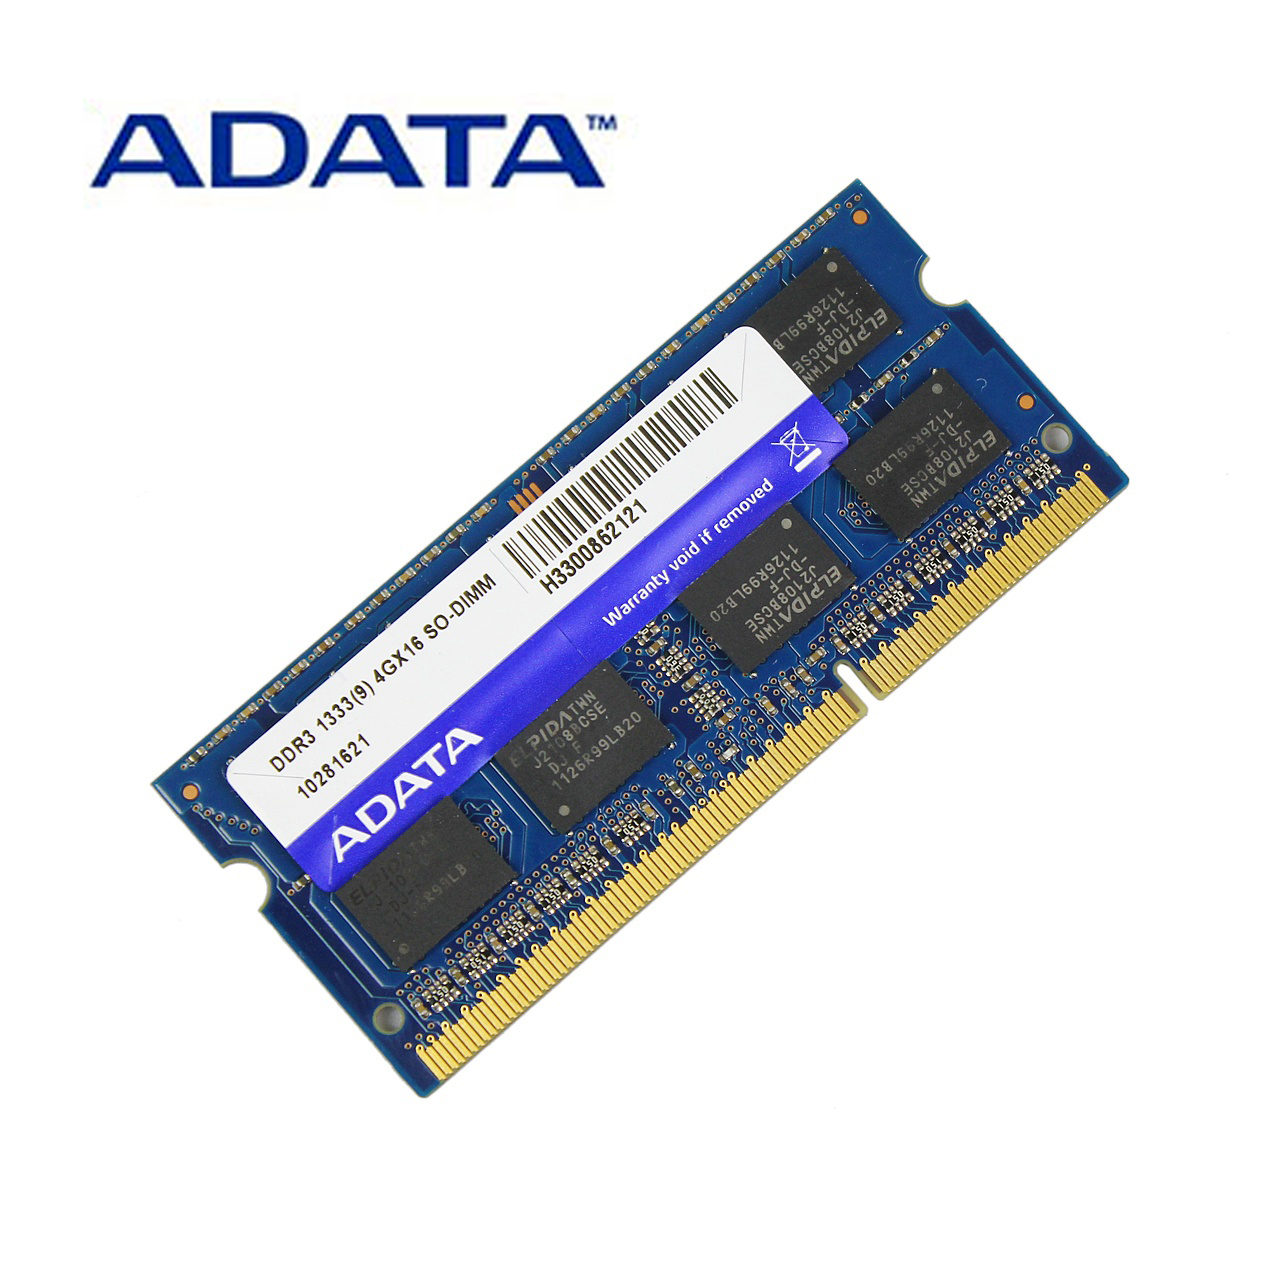 ADATA <font><b>DDR3</b></font> 1.5V 2GB <font><b>4GB</b></font> 8GB 1333MHz Ram Memory SO-DIMM 204 Pin PC3-10600 For Lenovo ThinkPad SONY Acer <font><b>SAMSUNG</b></font> HP Laptop RAMs image